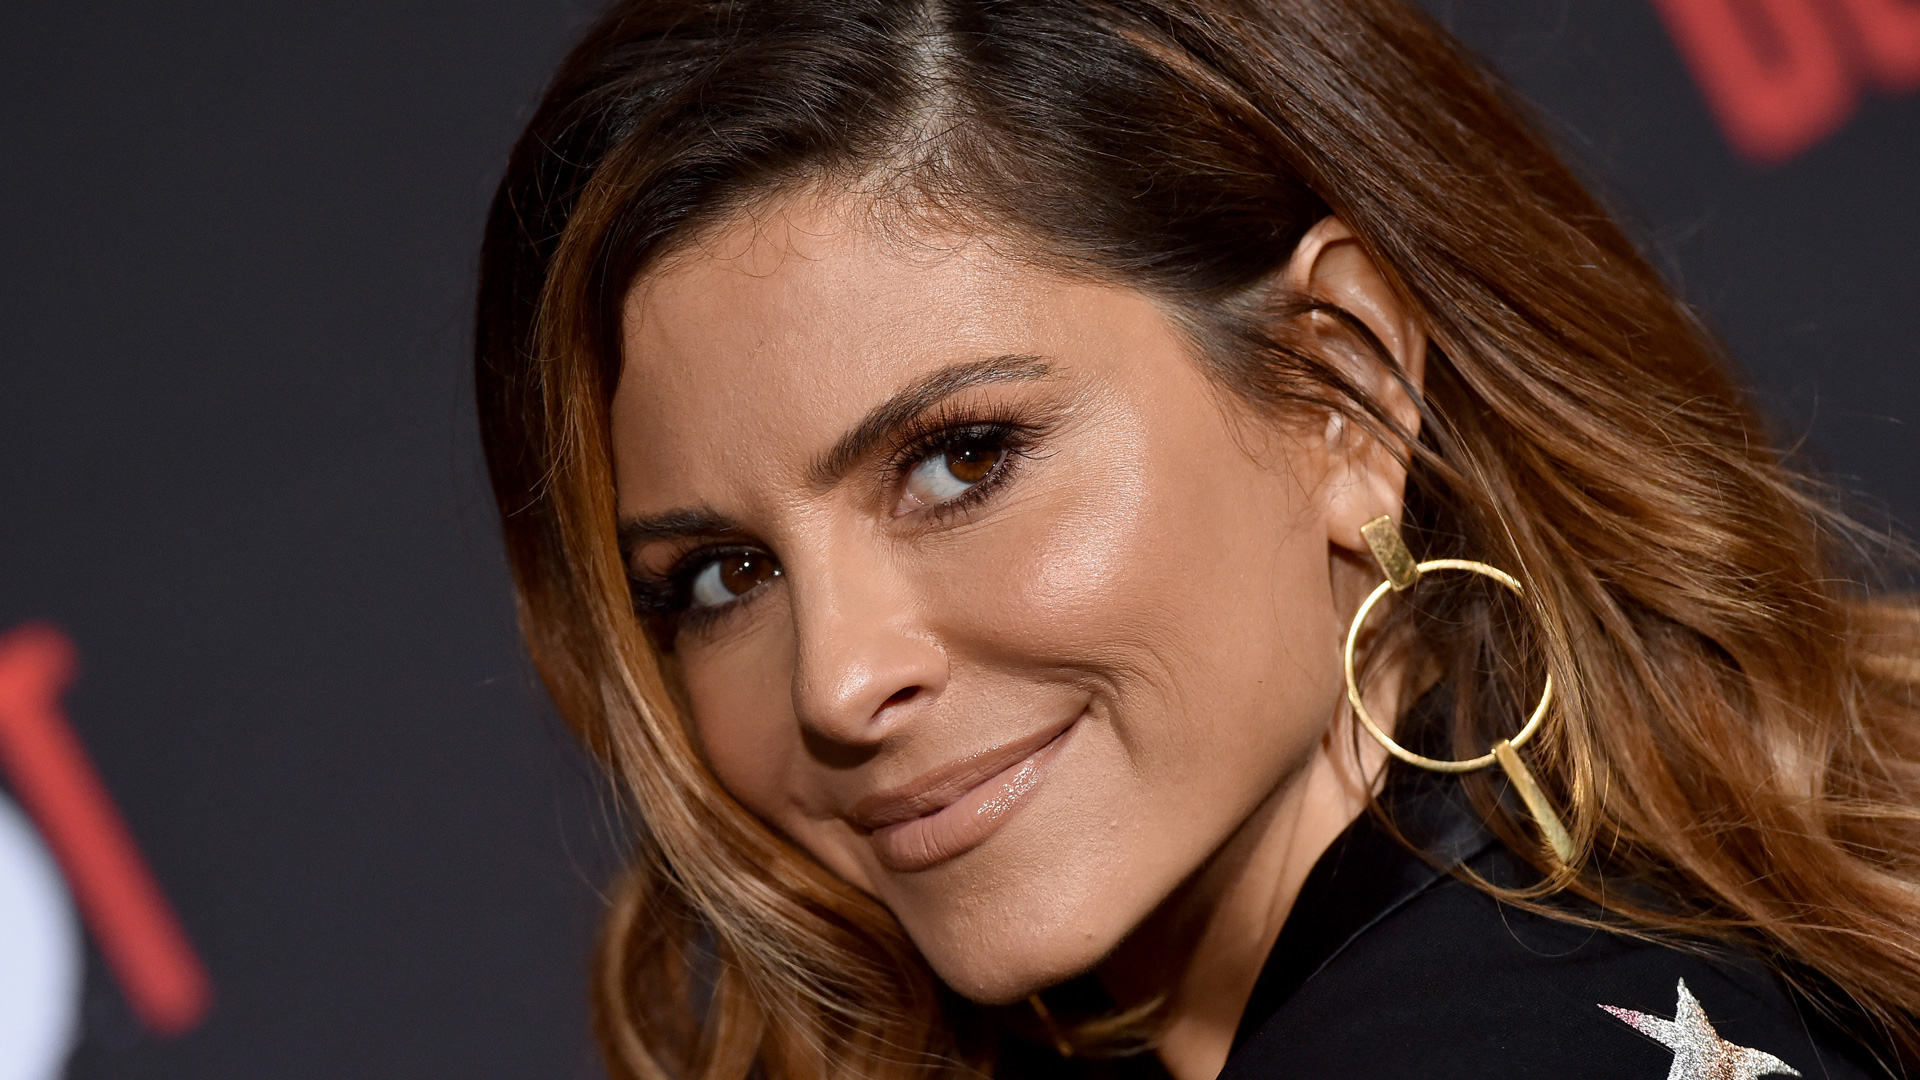 Maria Menounos will be joined by a different co-host each day.